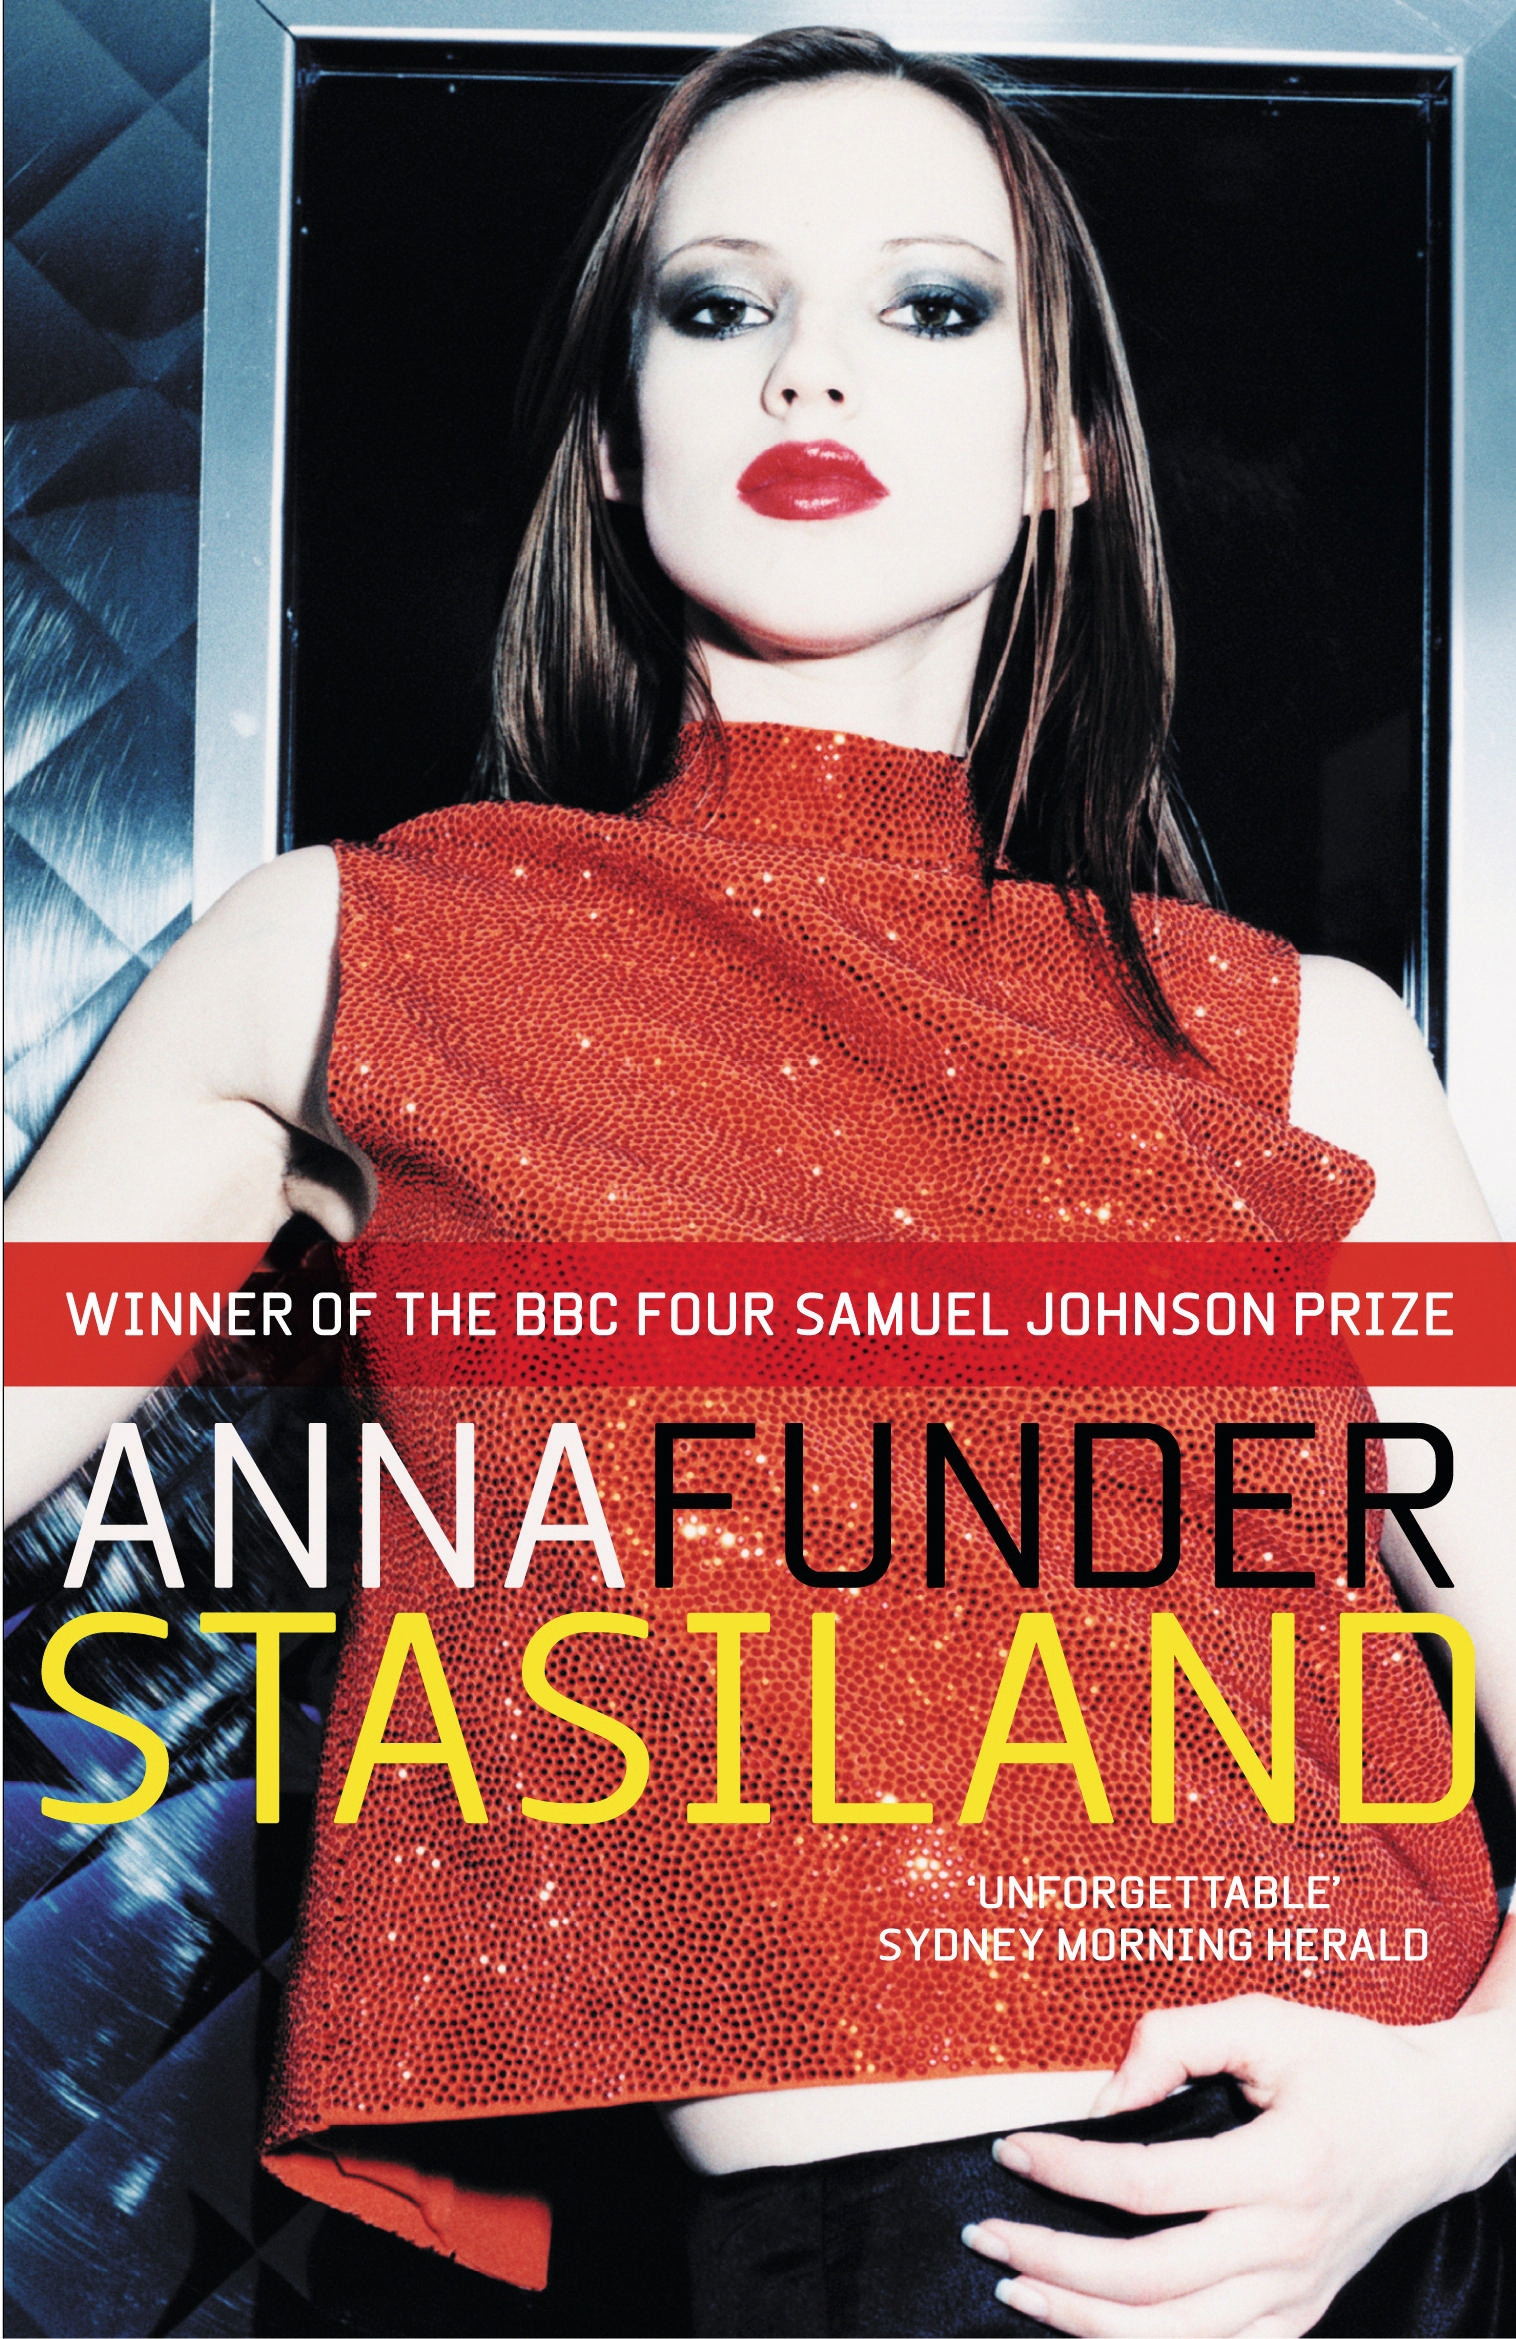 stasiland by anna funder essay Personal background anna funder 'characters' themes the nature of truth historical context communism outcome 1 - text response stasiland post war - germany.